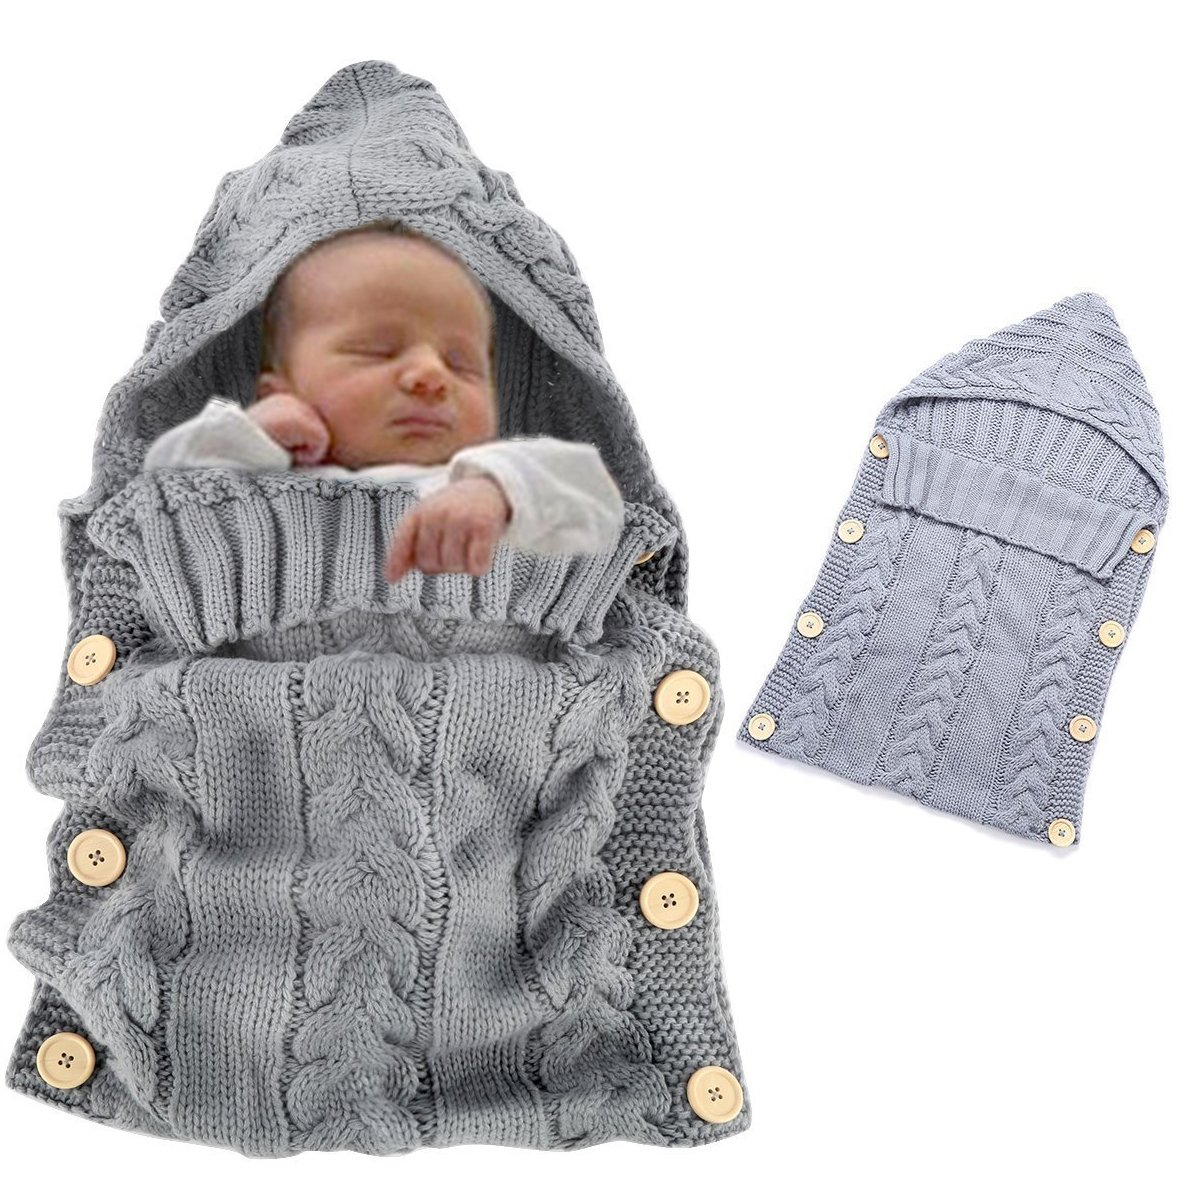 Baby Swaddle, Vandot Unisex Envelope Newborn Babies Toddle Infant Sleeping Bags Light Weight Soft Warm Crochet Knitted Blanket Swaddling Sleep Sack Stroller Wrap Moses Basket Pushchairs Bunting Bags for Stroller Prams Buggies Bike Trailer Car Seats Photo P